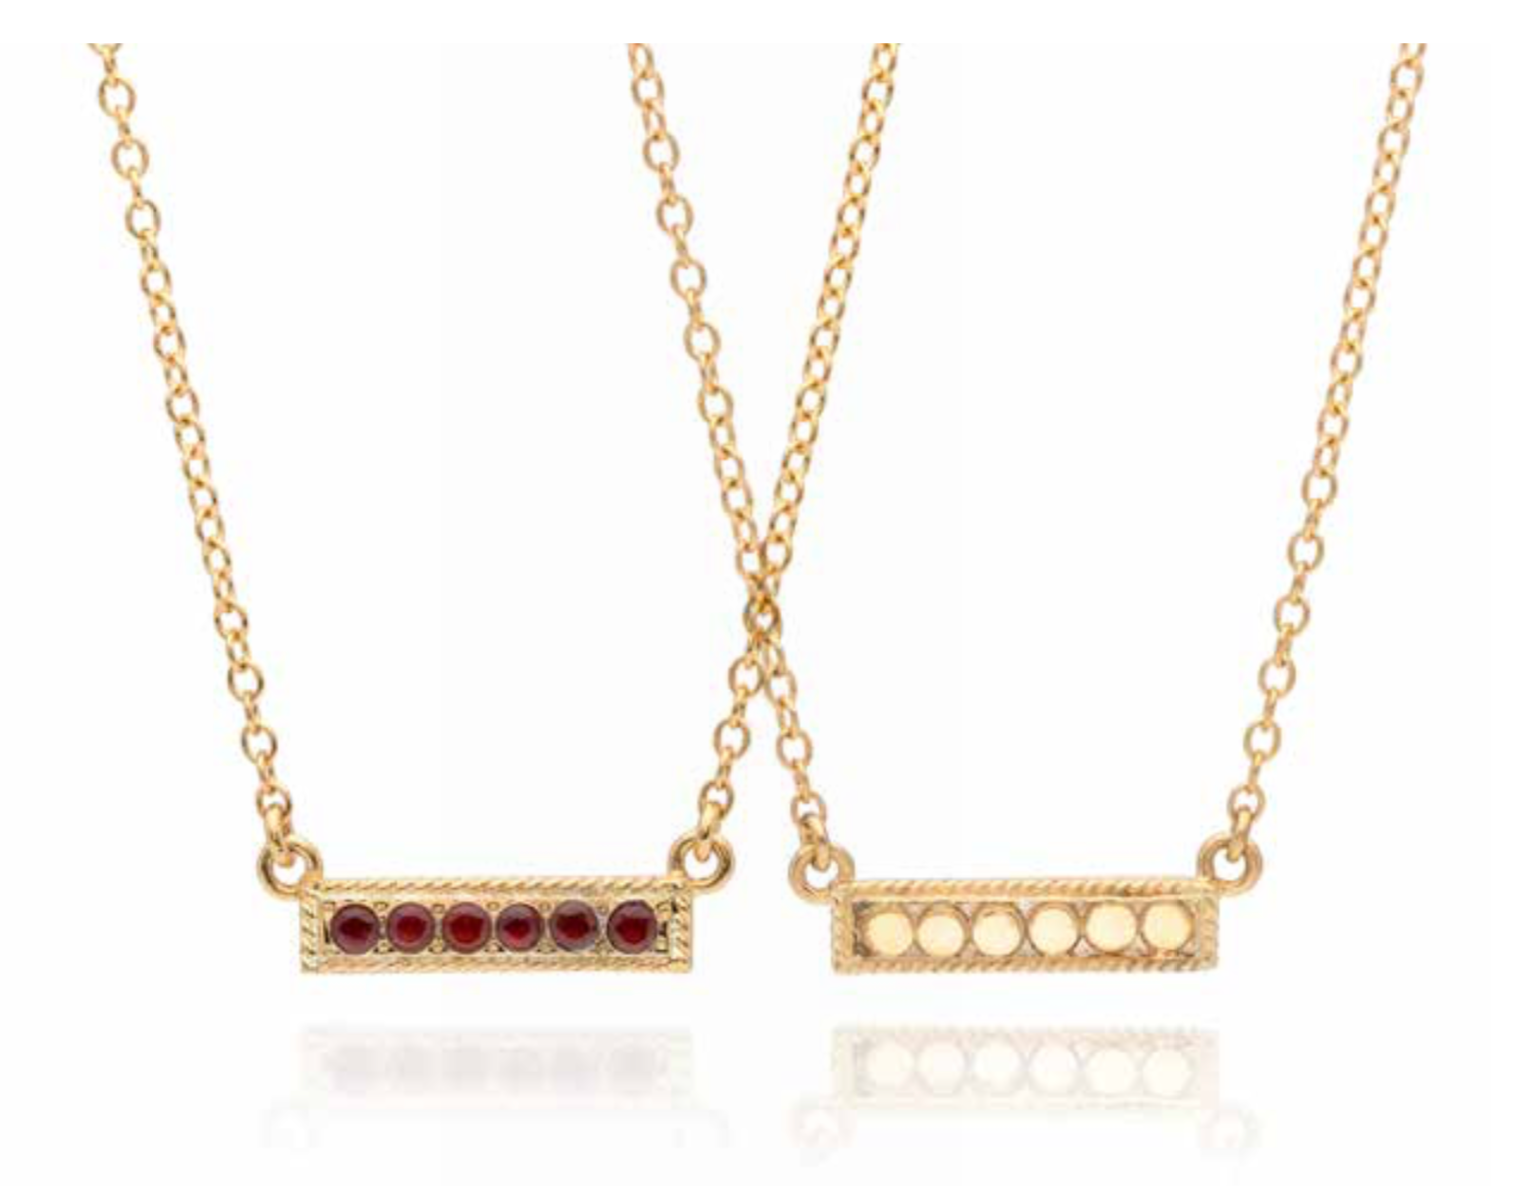 Garnet Reversible Pavé Stacking Necklace